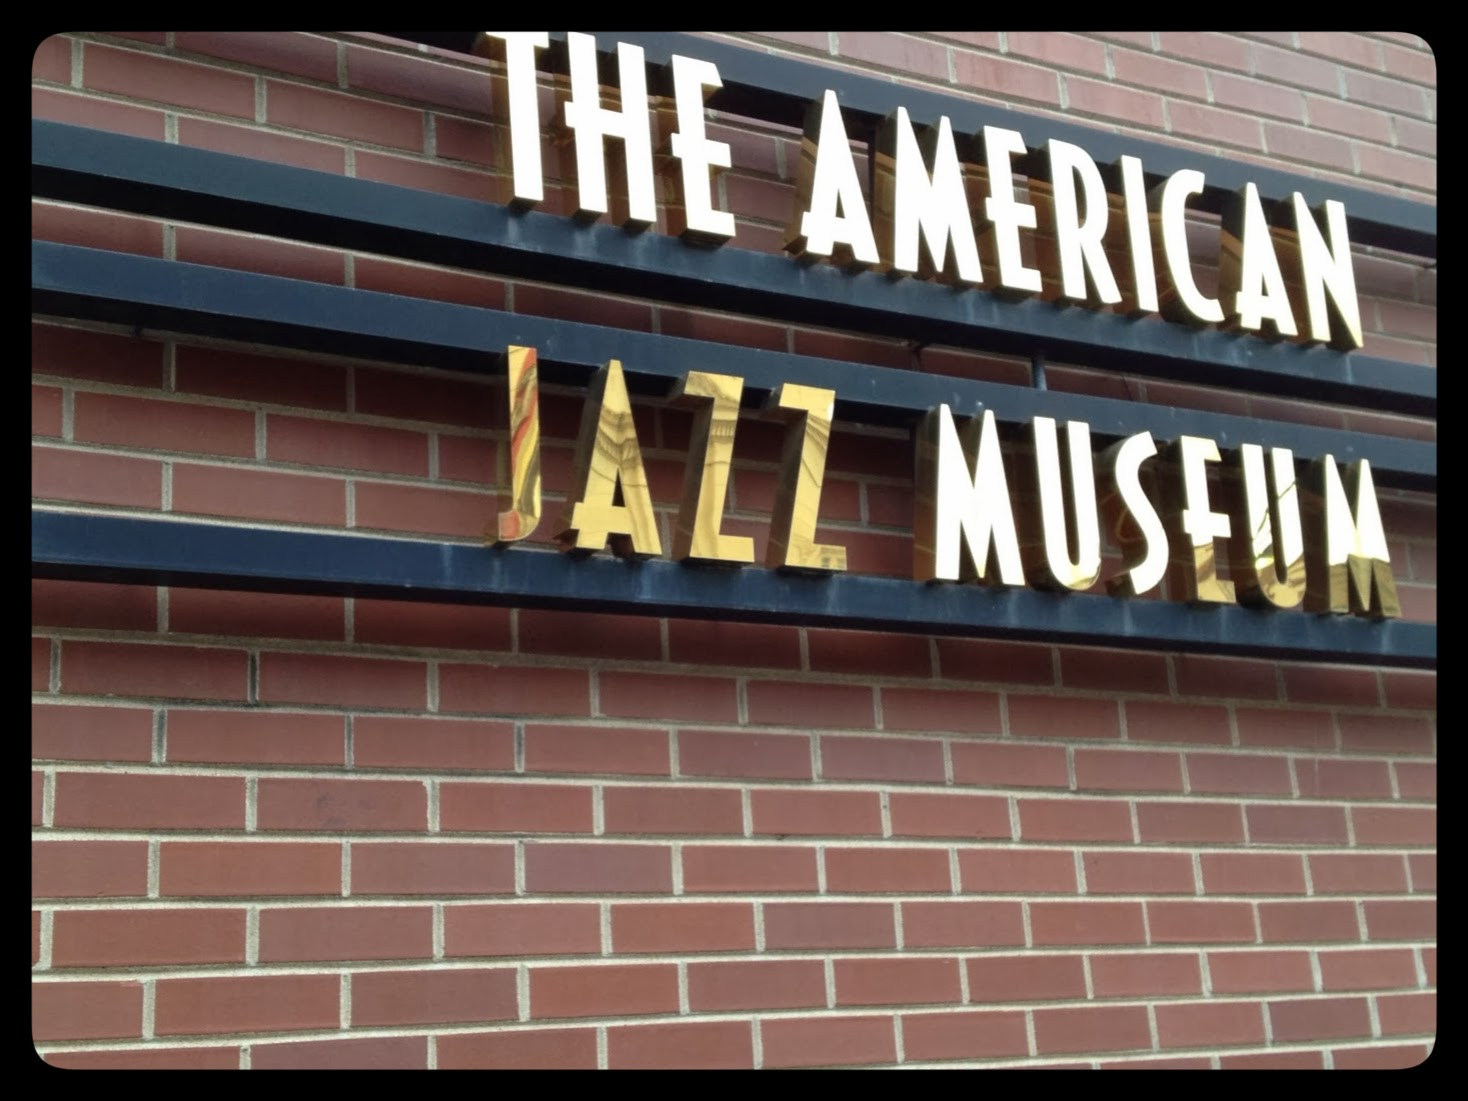 The American Jazz Museum